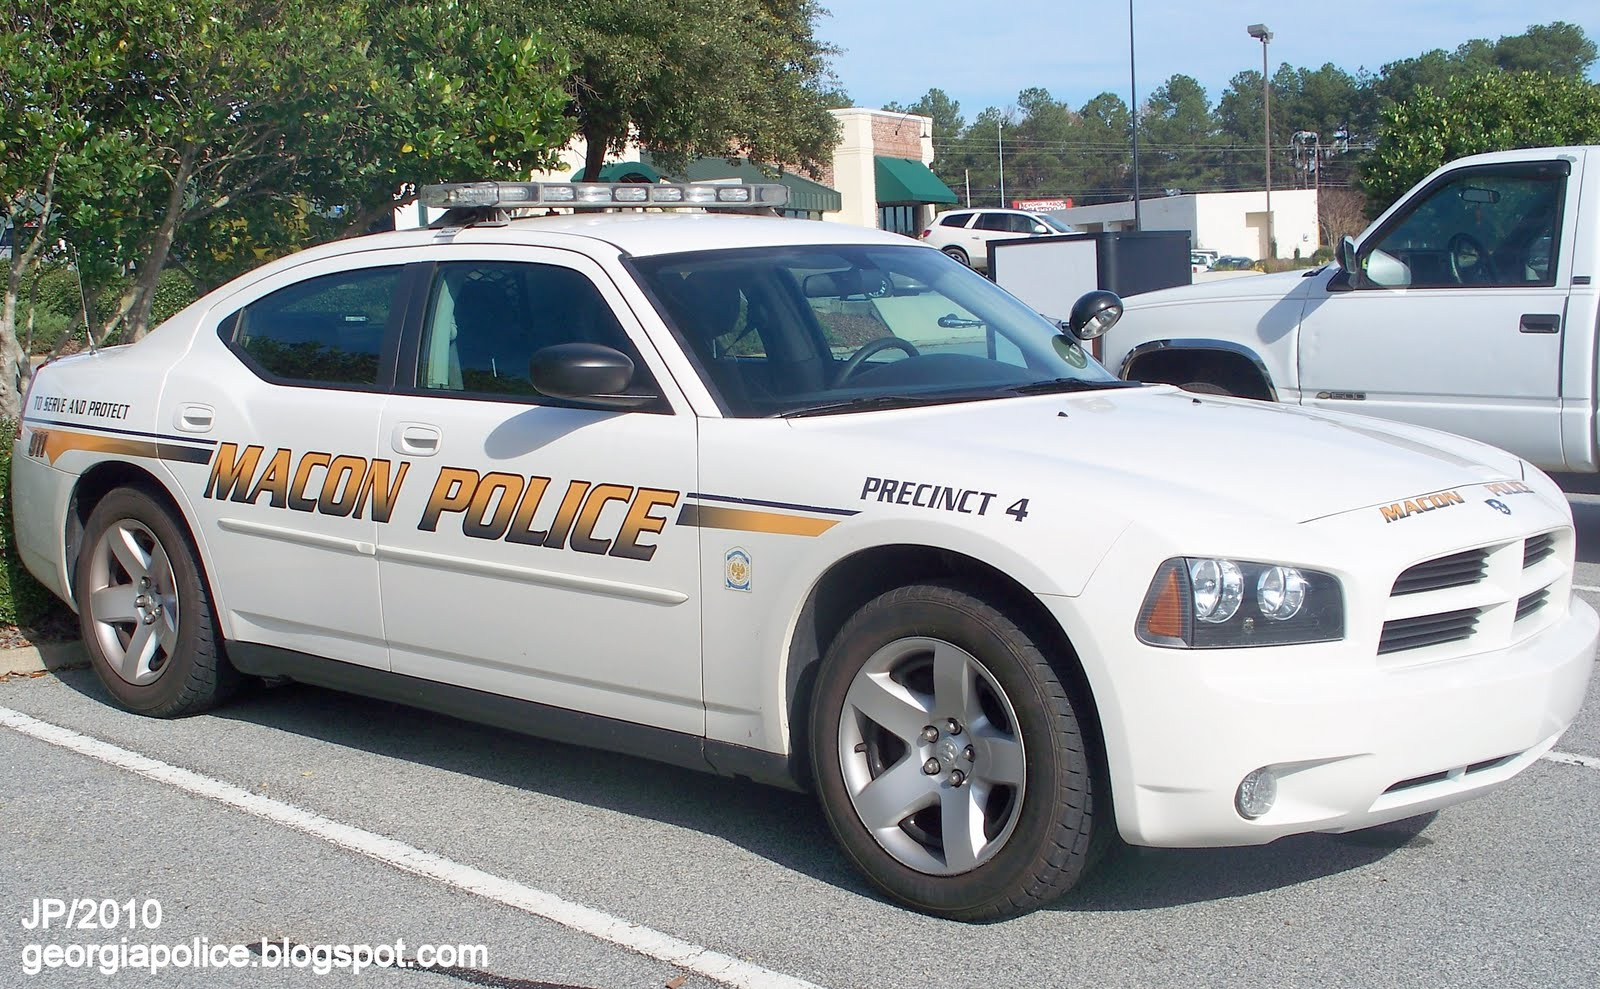 POLICE DEPARTMENT, Macon Police Patrol Car,Charger, Precinct 4, Bibb